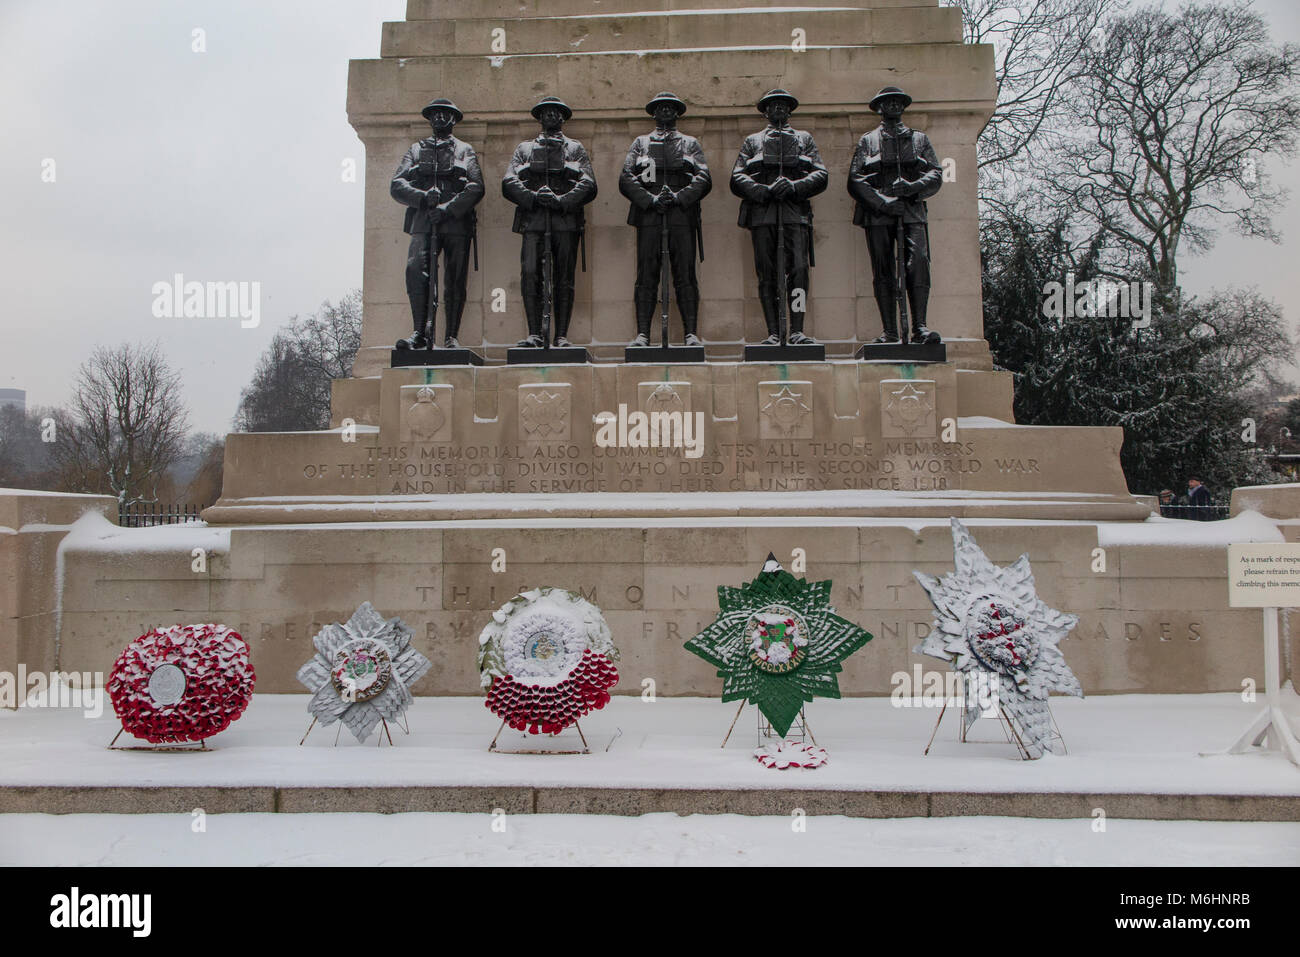 A snow covered war memorial in St James's Park - Stock Image